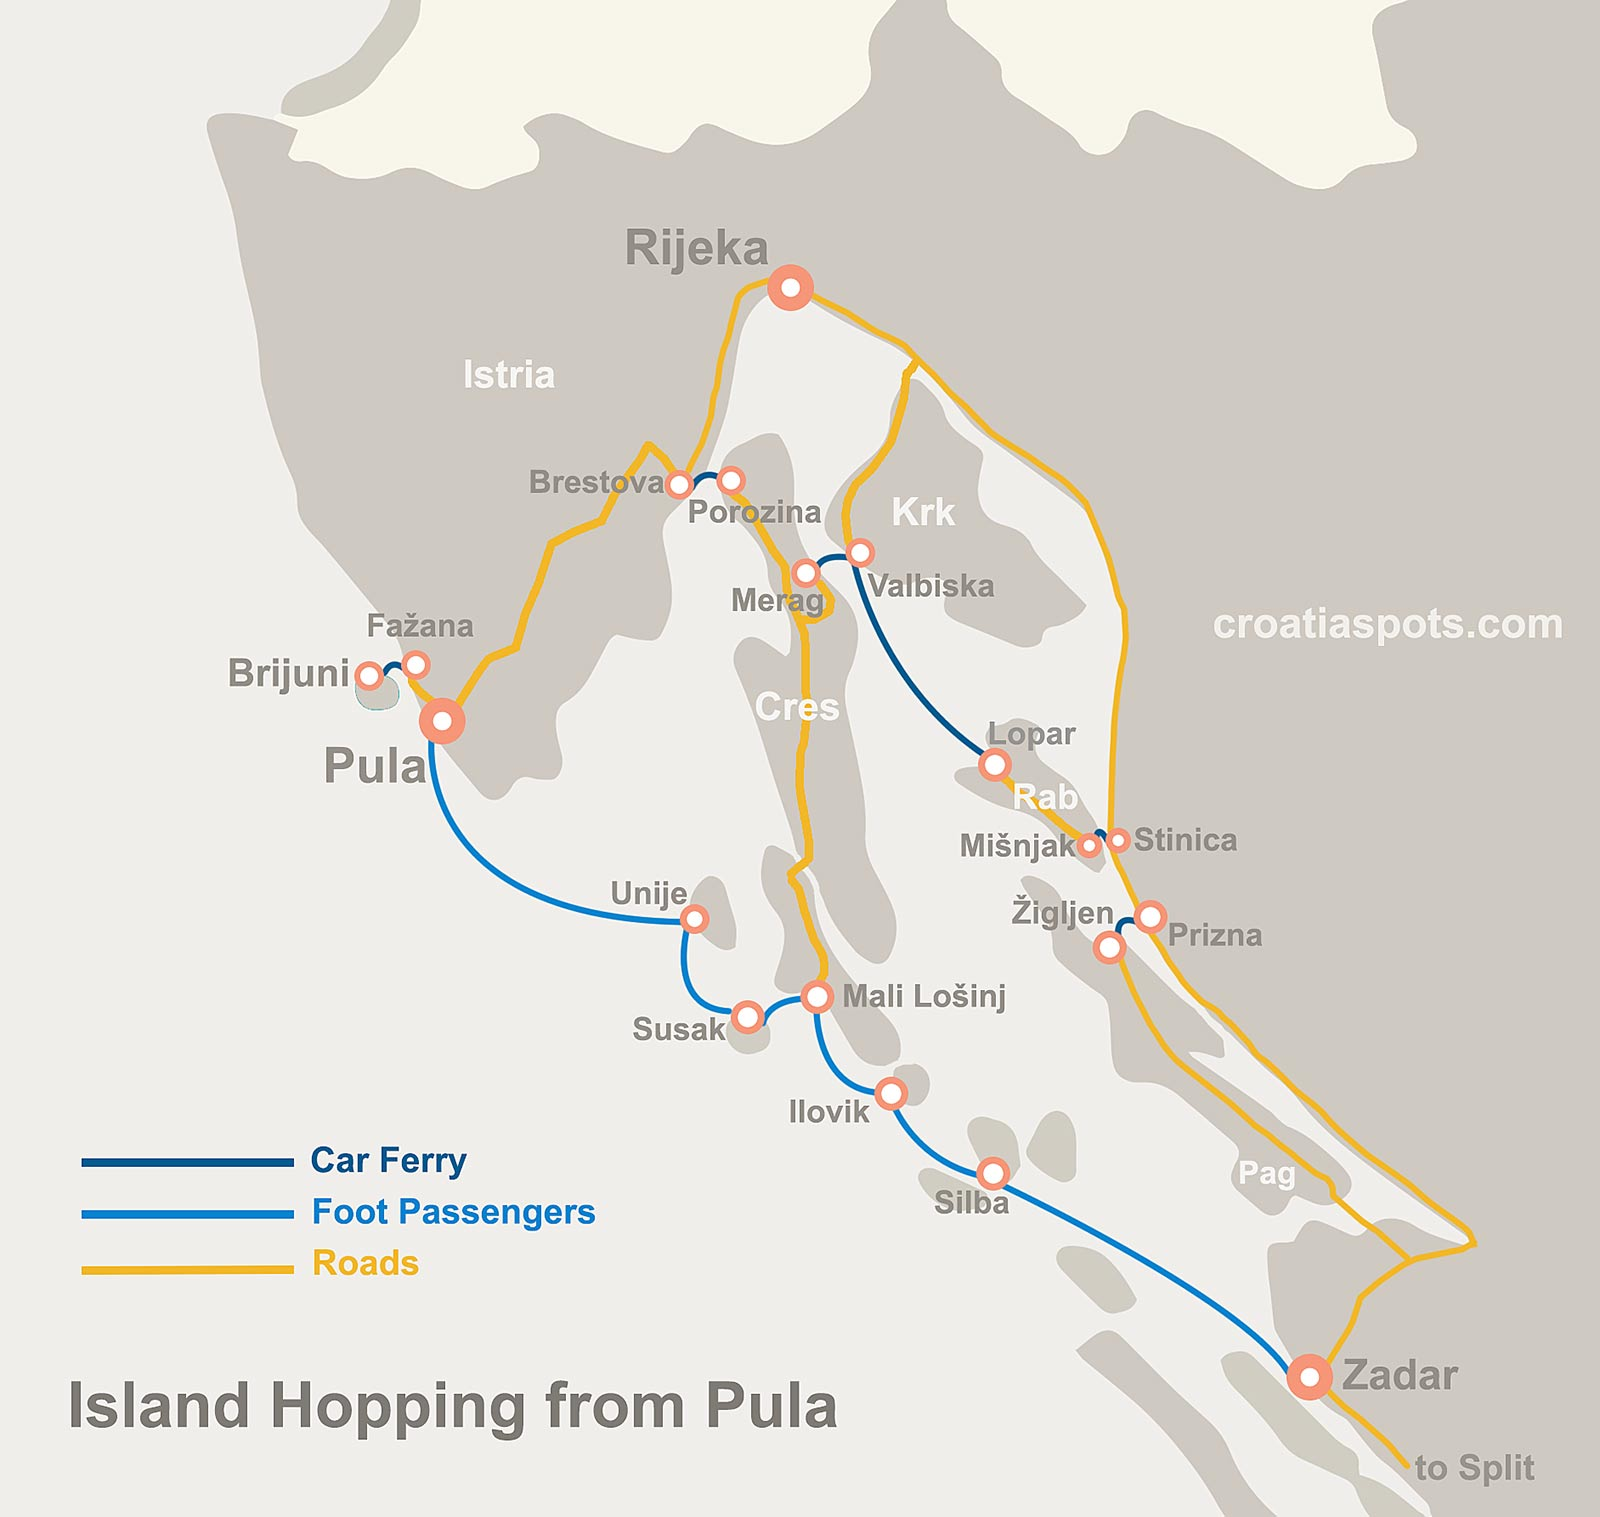 Map of Island Hopping from Pula to Zadar